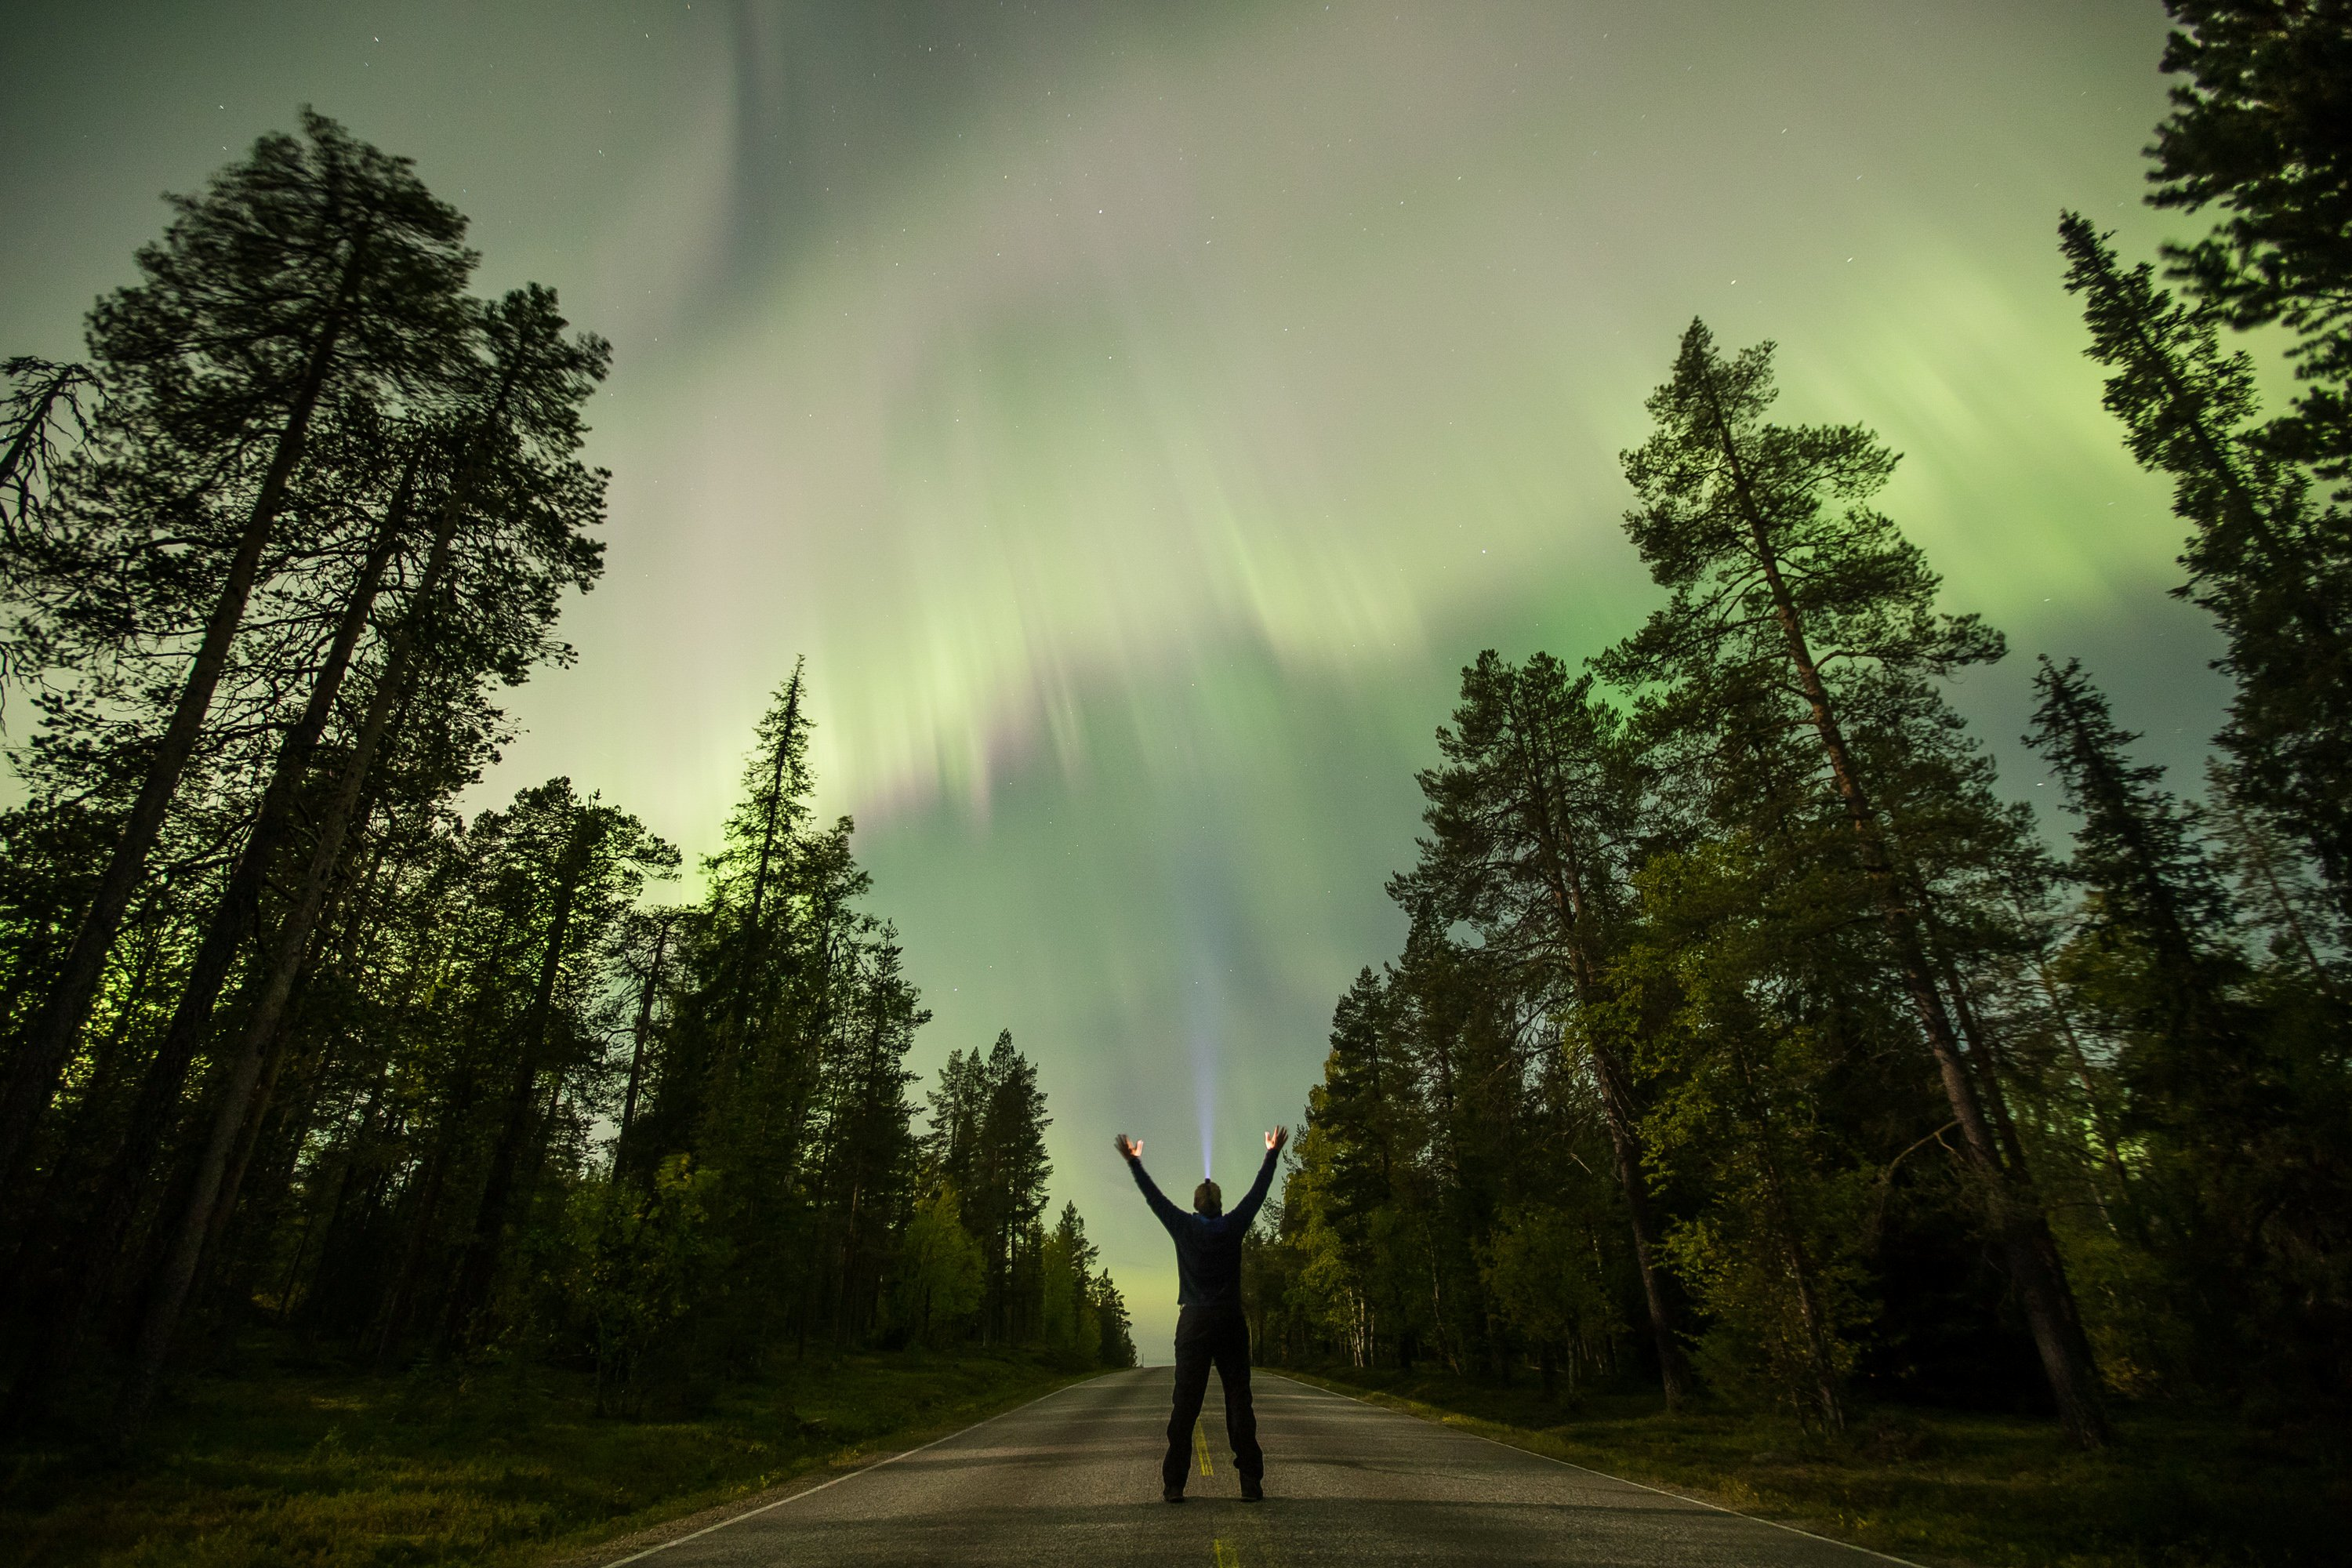 The Aurora Borealis (Northern Lights) is seen over the sky near the village of Pallas (Muonio region) of Lapland, Finland September 8, 2017. REUTERS/Alexander Kuznetsov/All About Lapland